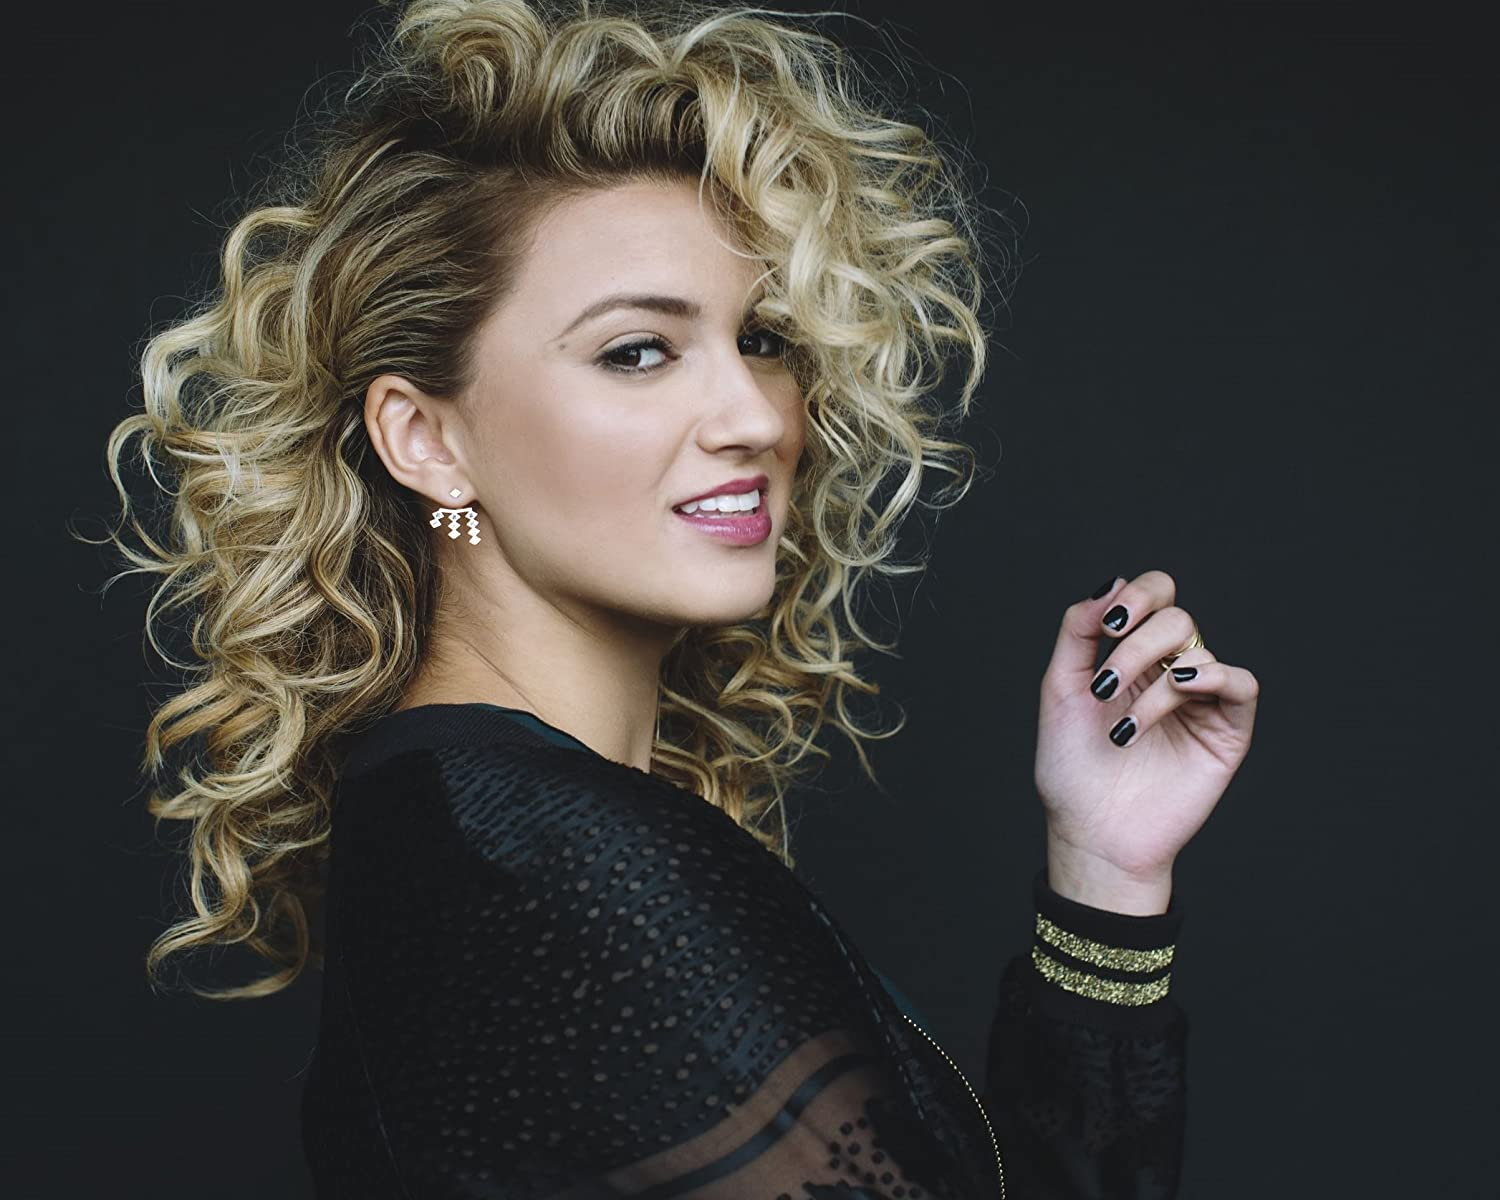 Tori Kelly 8 x 10/8x10 GLOSSY Photo Picture